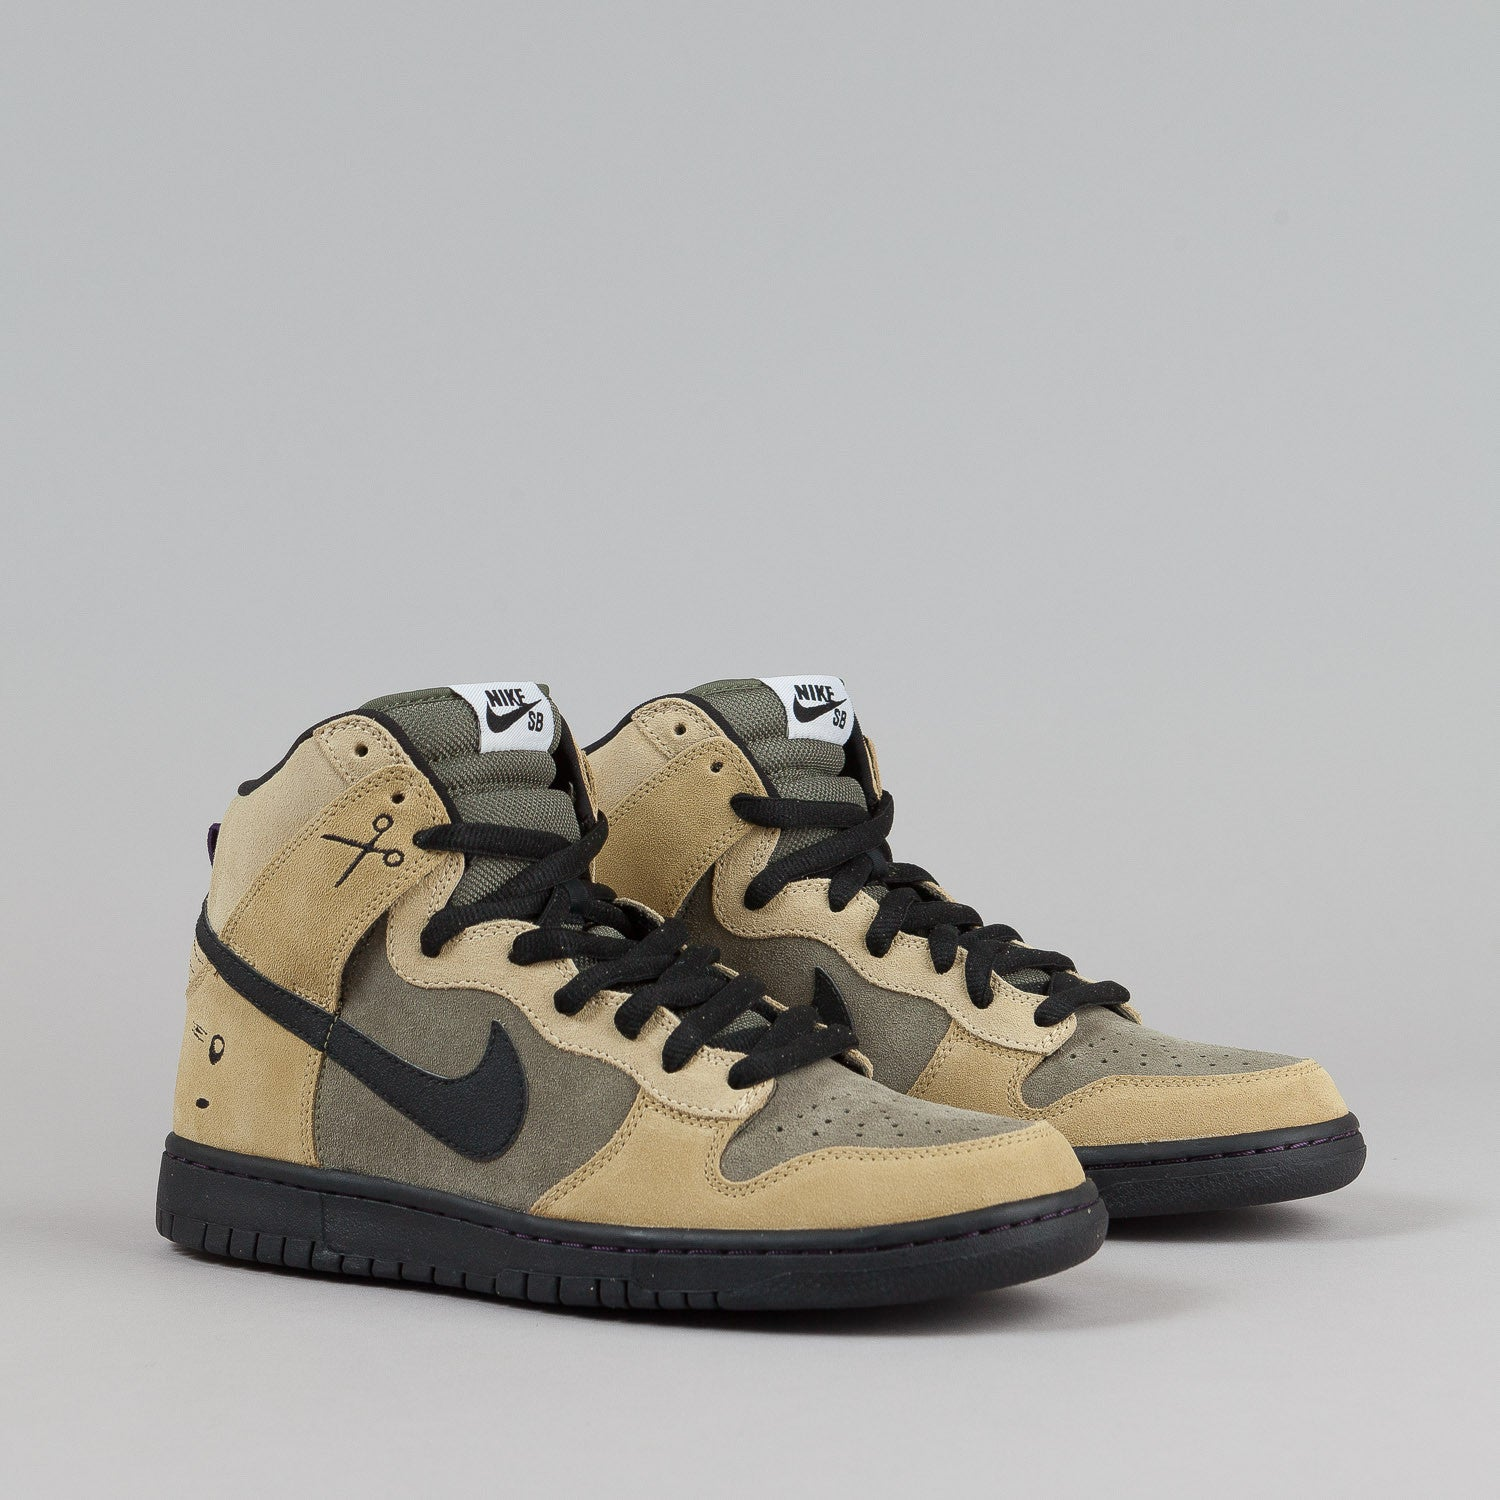 Nike SB Dunk High Premium - Urban Haze / Black / Barley